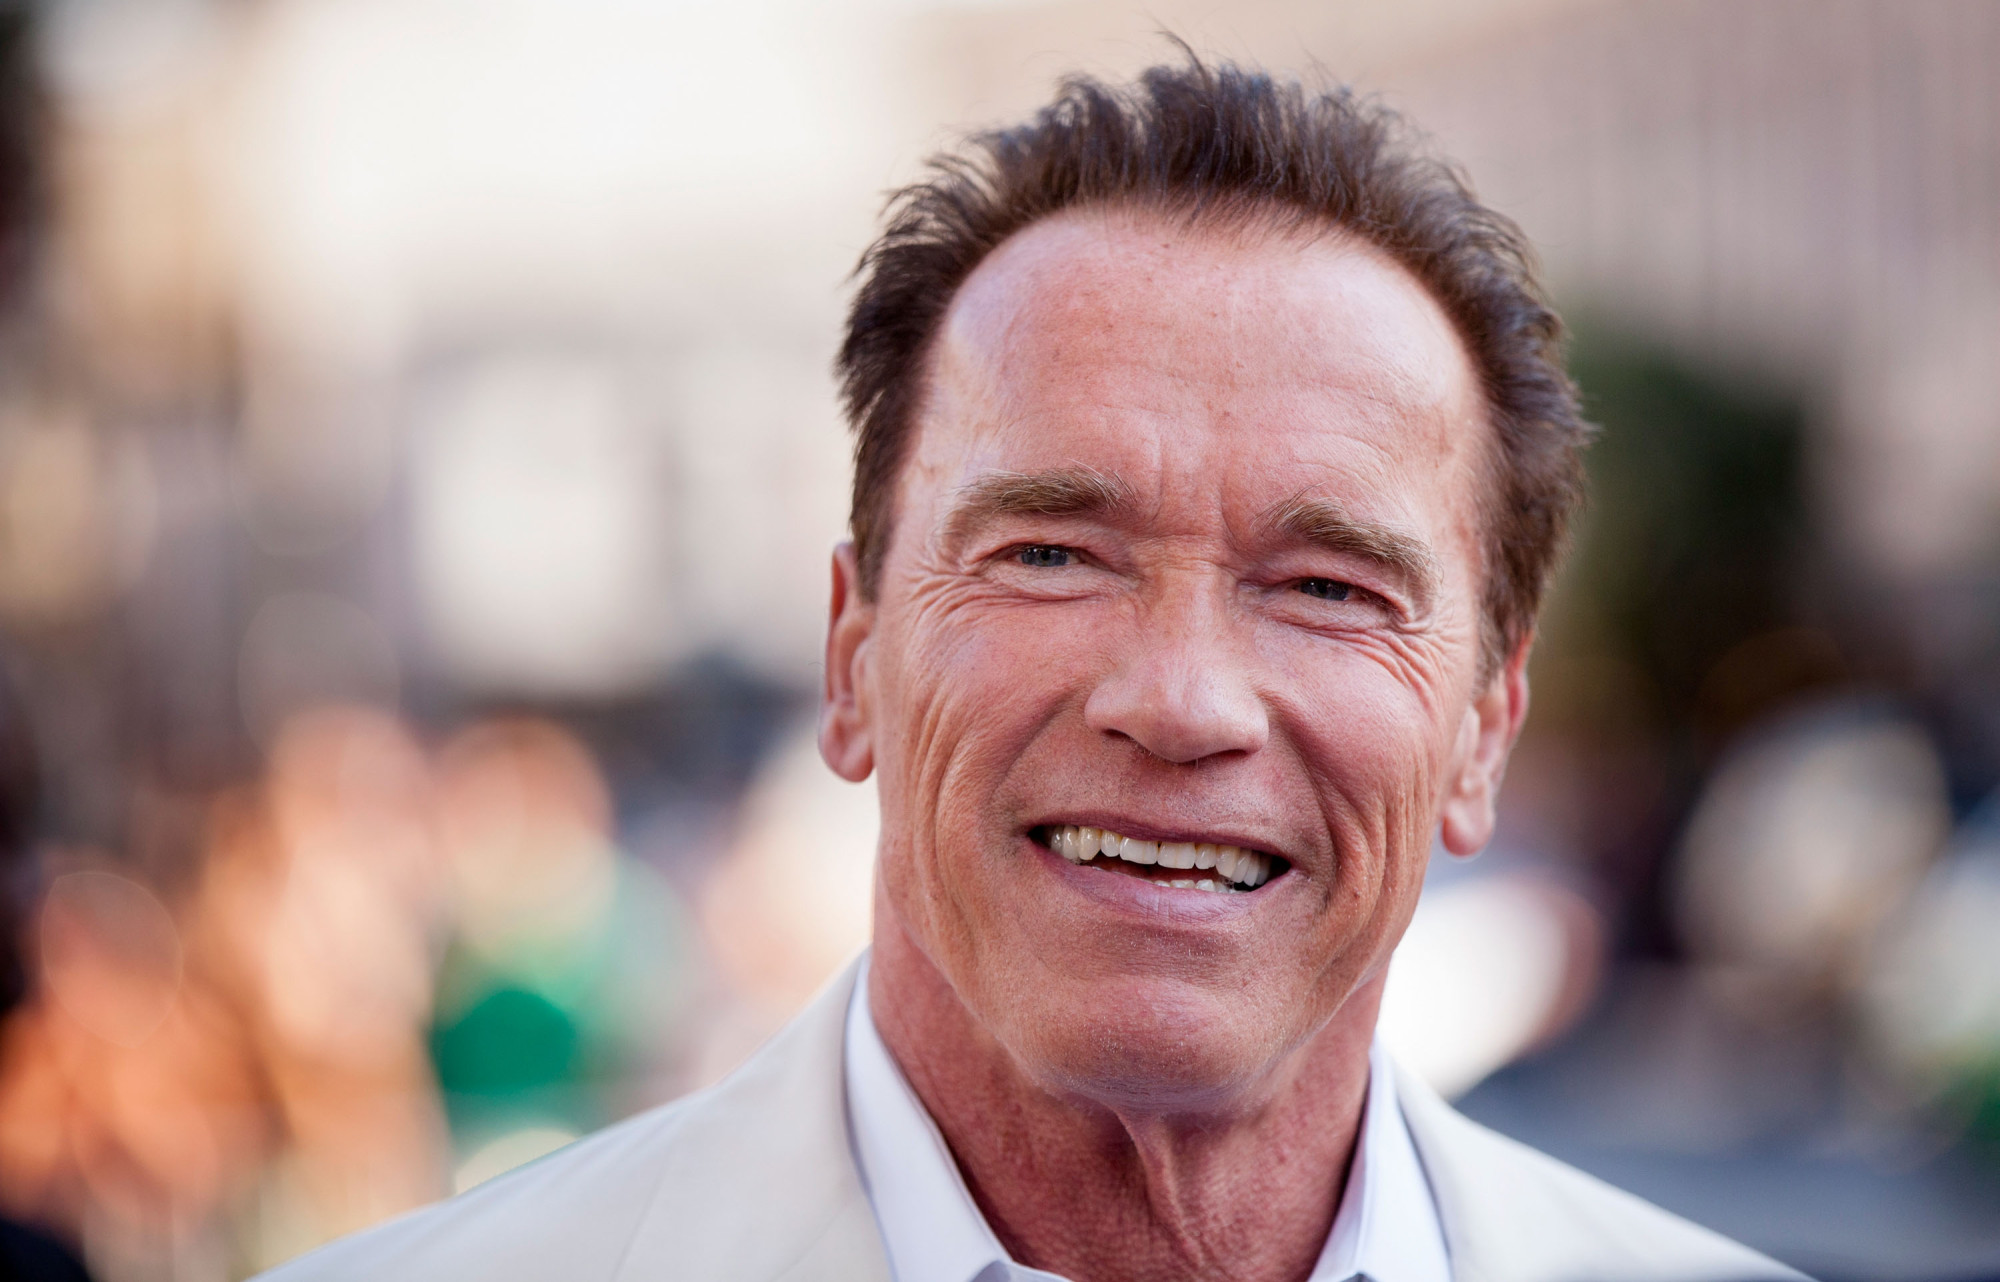 Arnold Schwarzenegger Not Cast In 'Avatar' Sequel According To Studio... Arnold Schwarzenegger